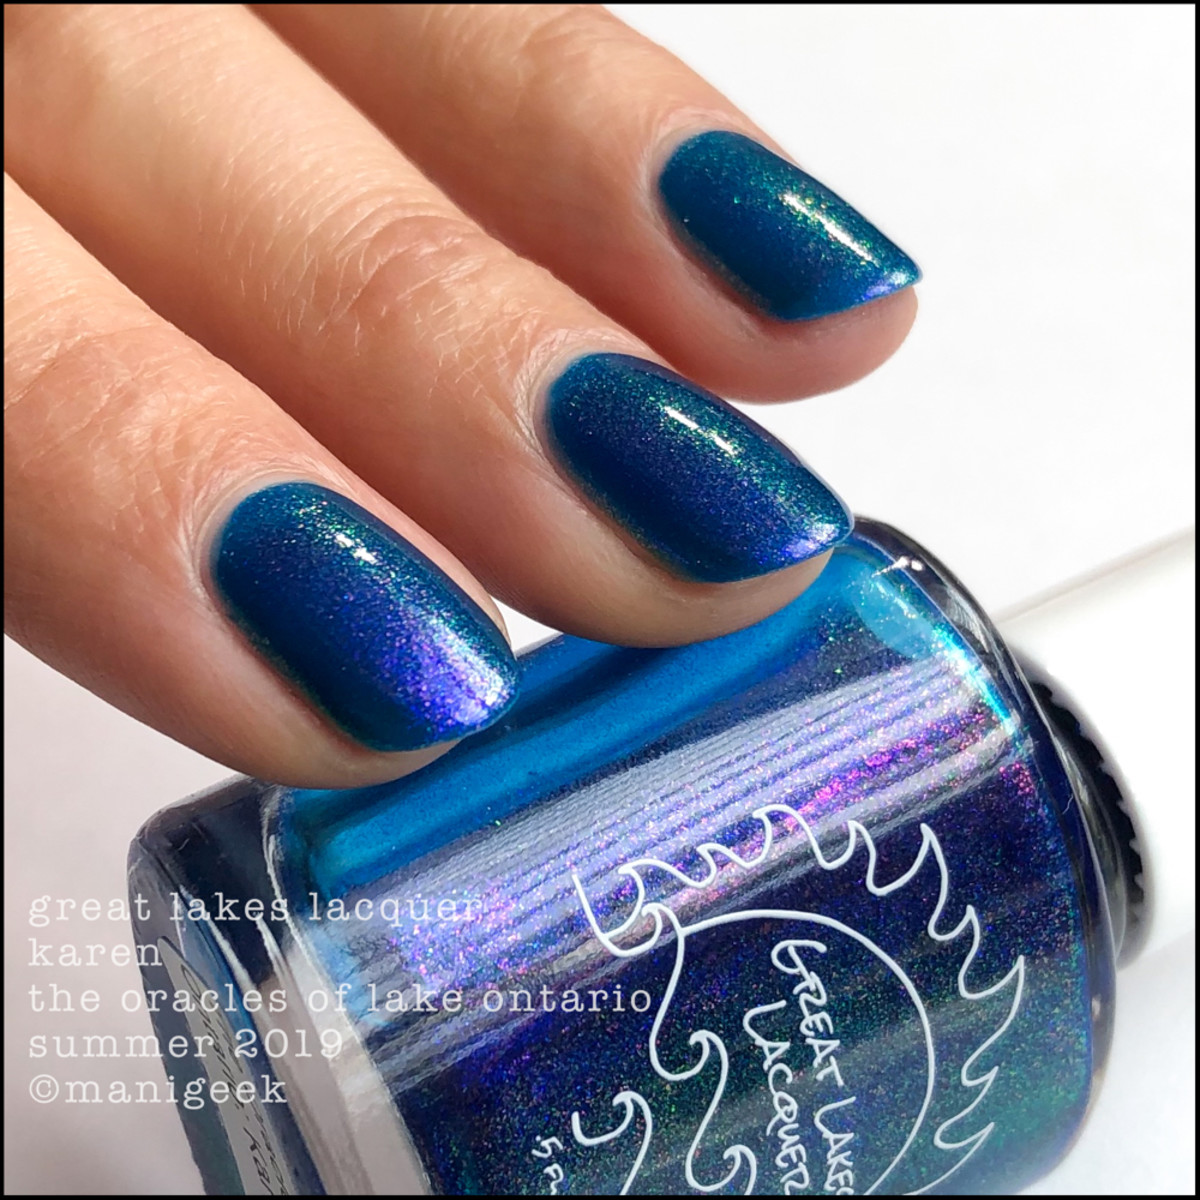 Great Lakes Lacquer Oracles of Lake Ontario Karen - LE IEC 2019 3